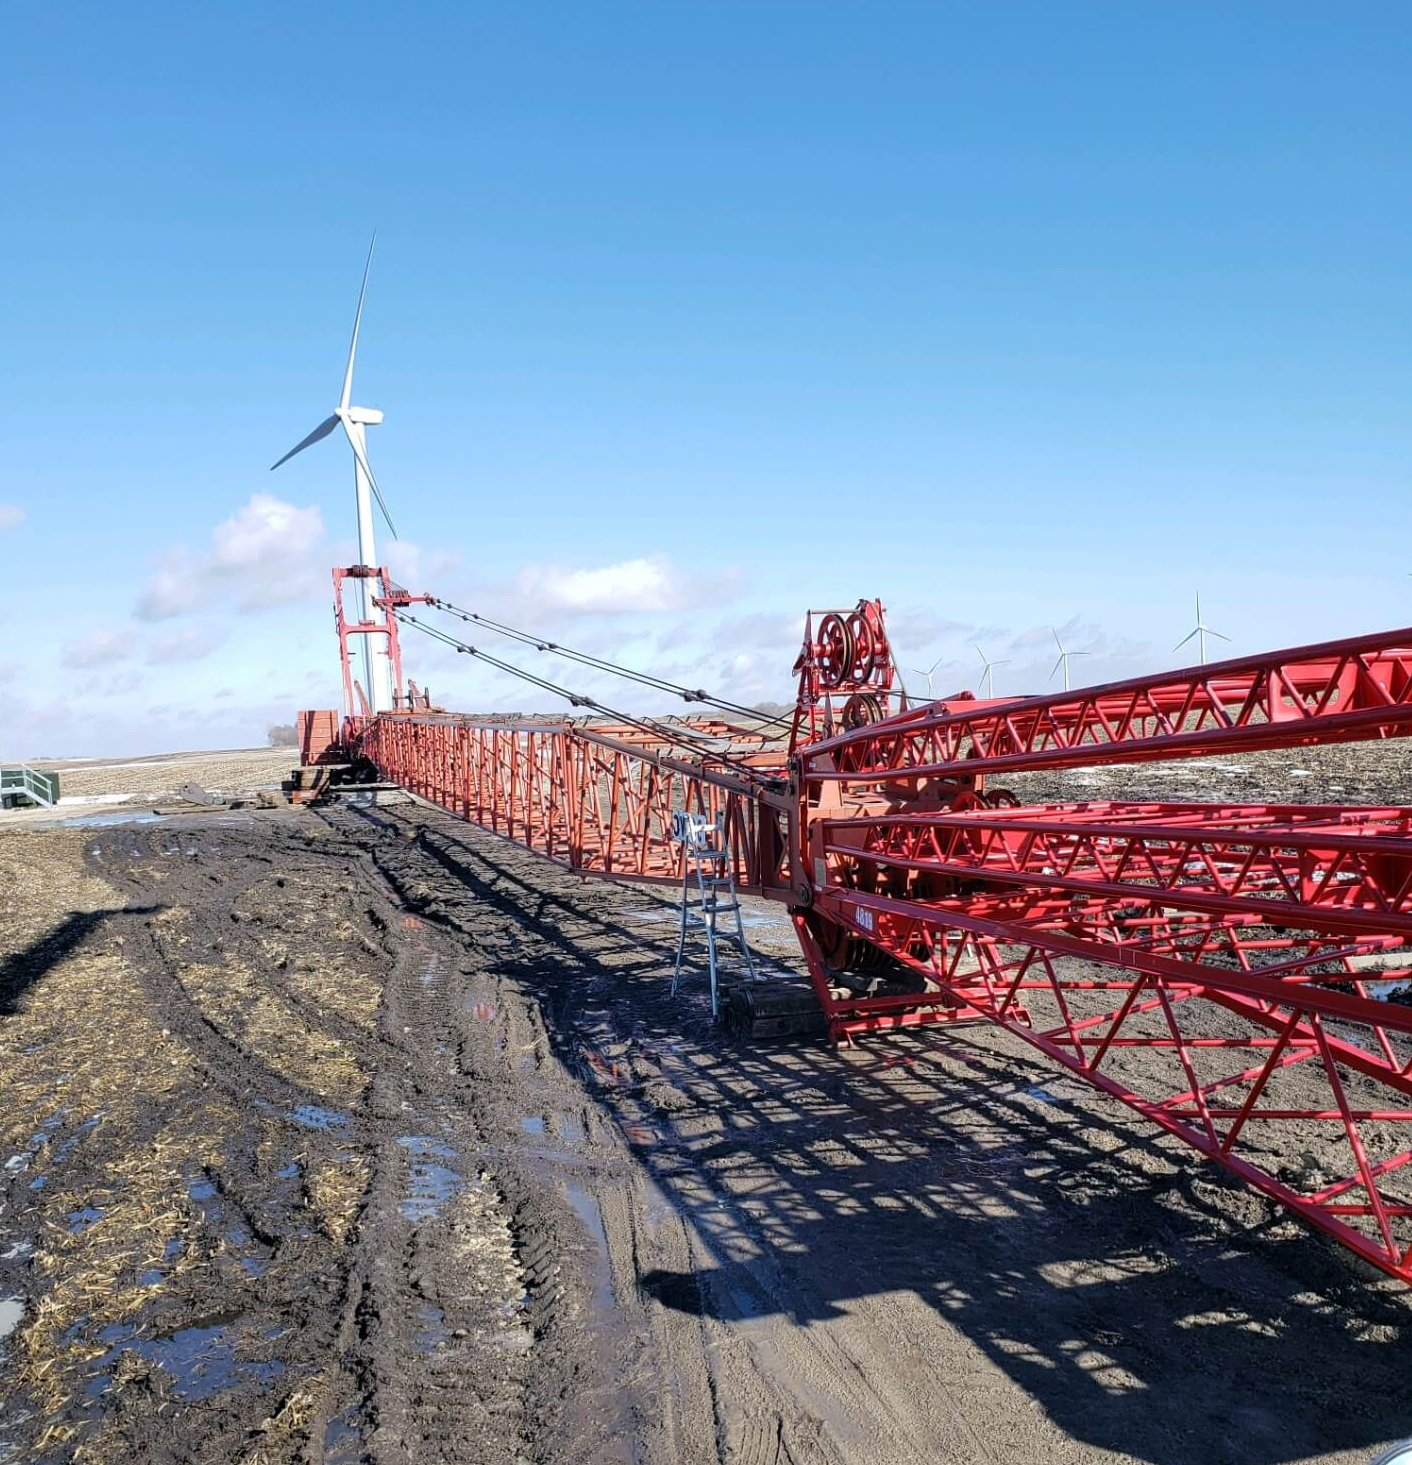 300 Ton Manitowoc Crawler Crane set up